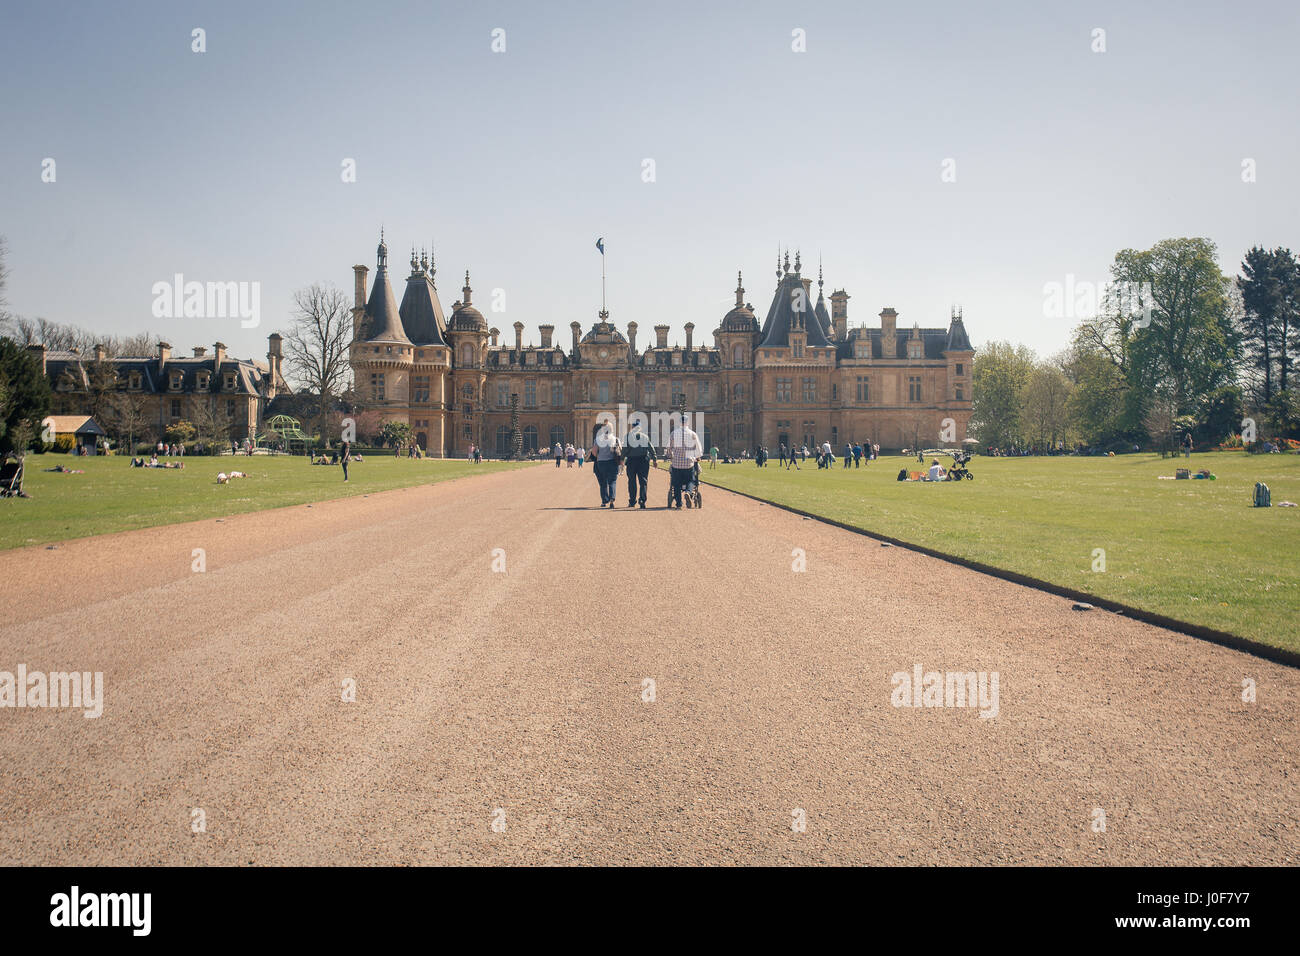 Waddesdon Manor is a country house in the village of Waddesdon, in Buckinghamshire, England. It is located in the - Stock Image